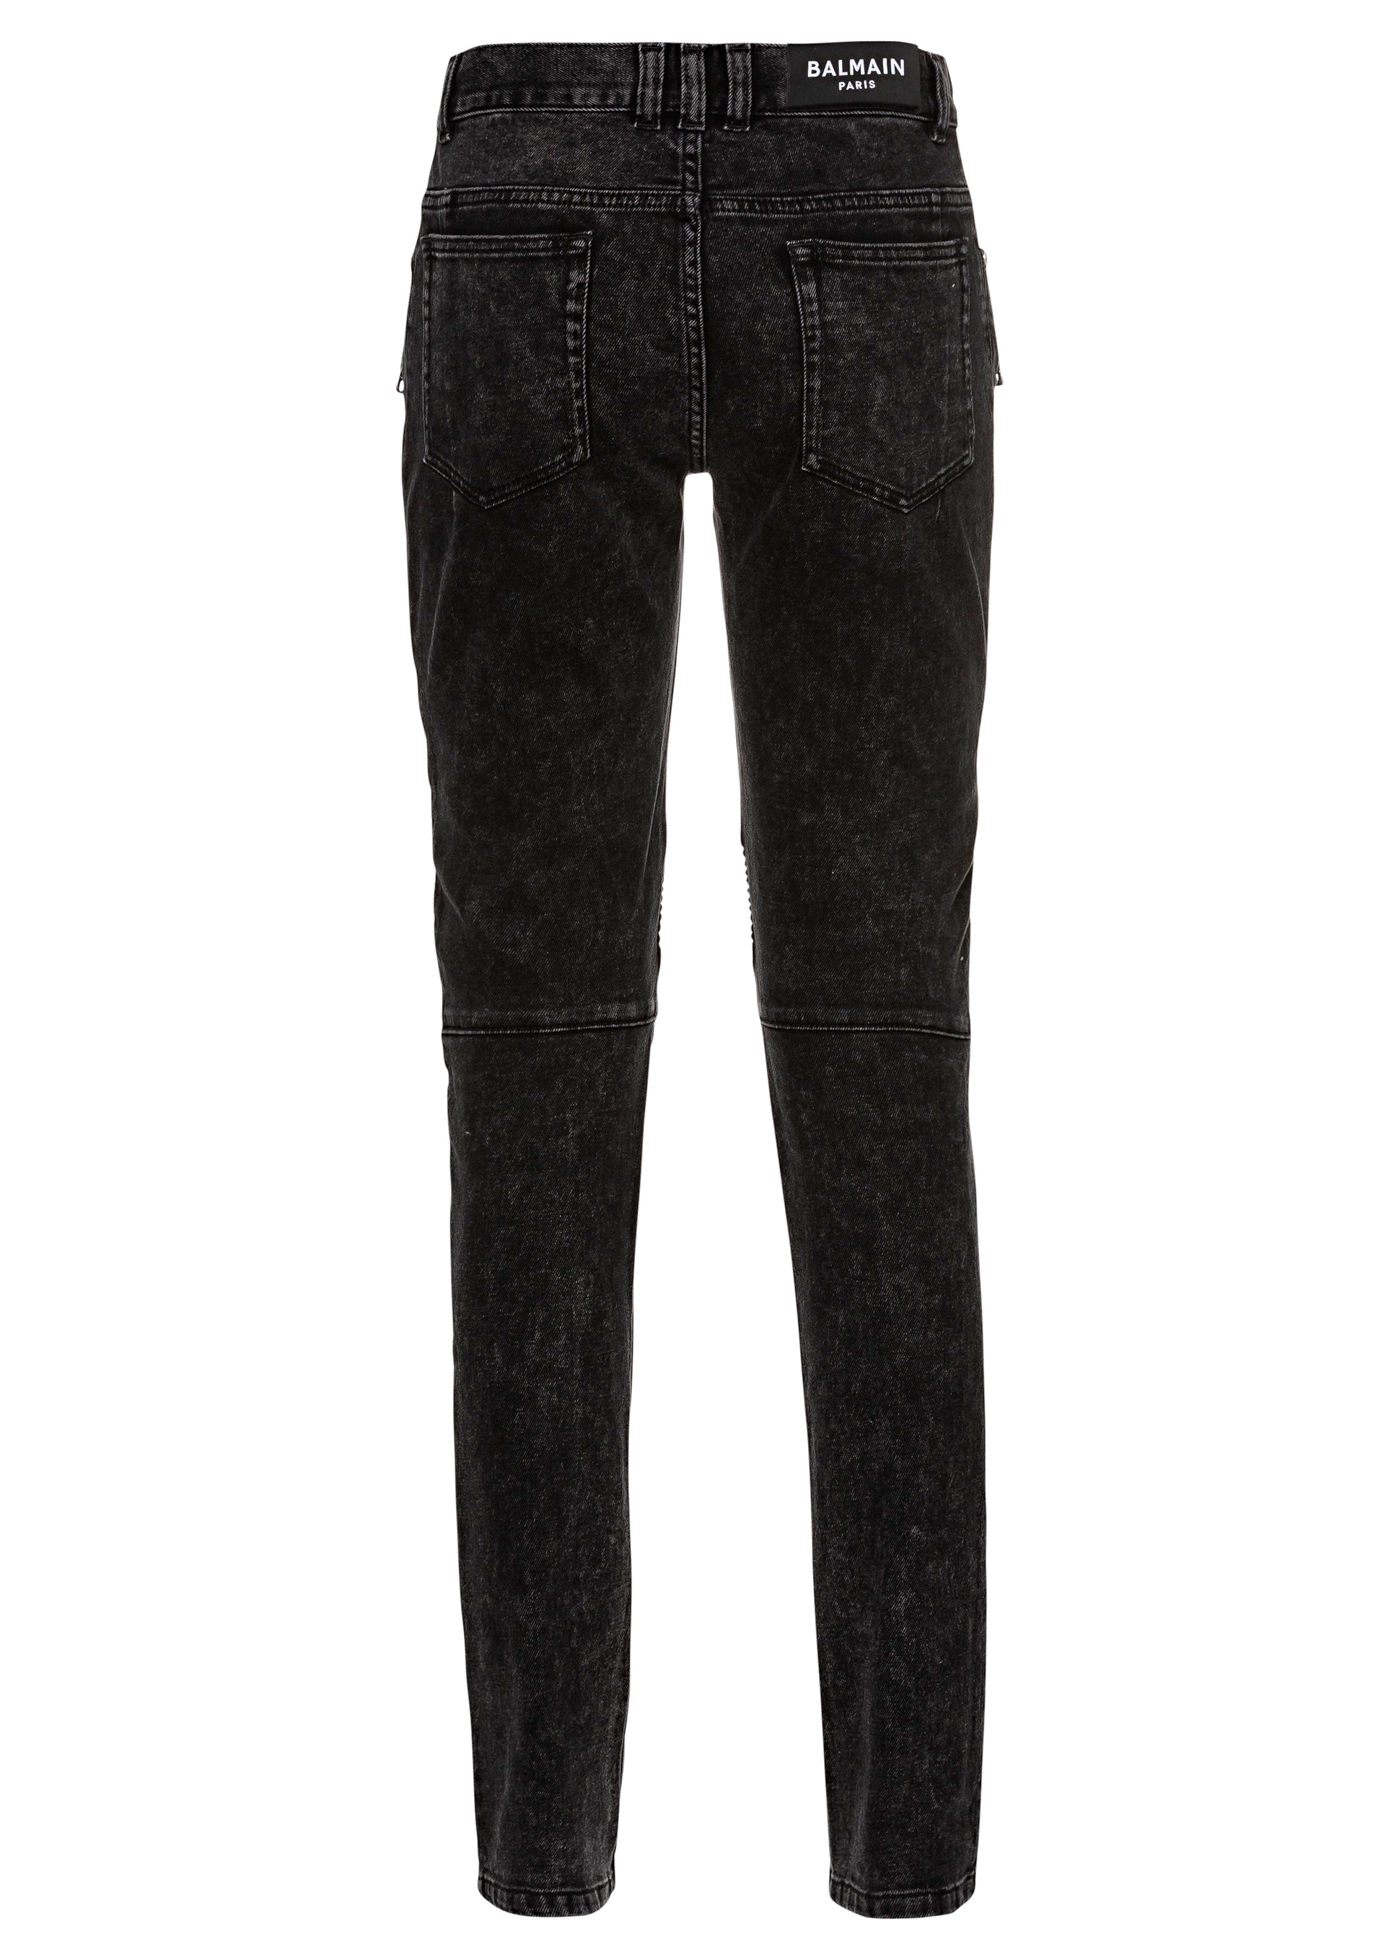 RIBBED SLIM JEANS-BLEACHED image number 1